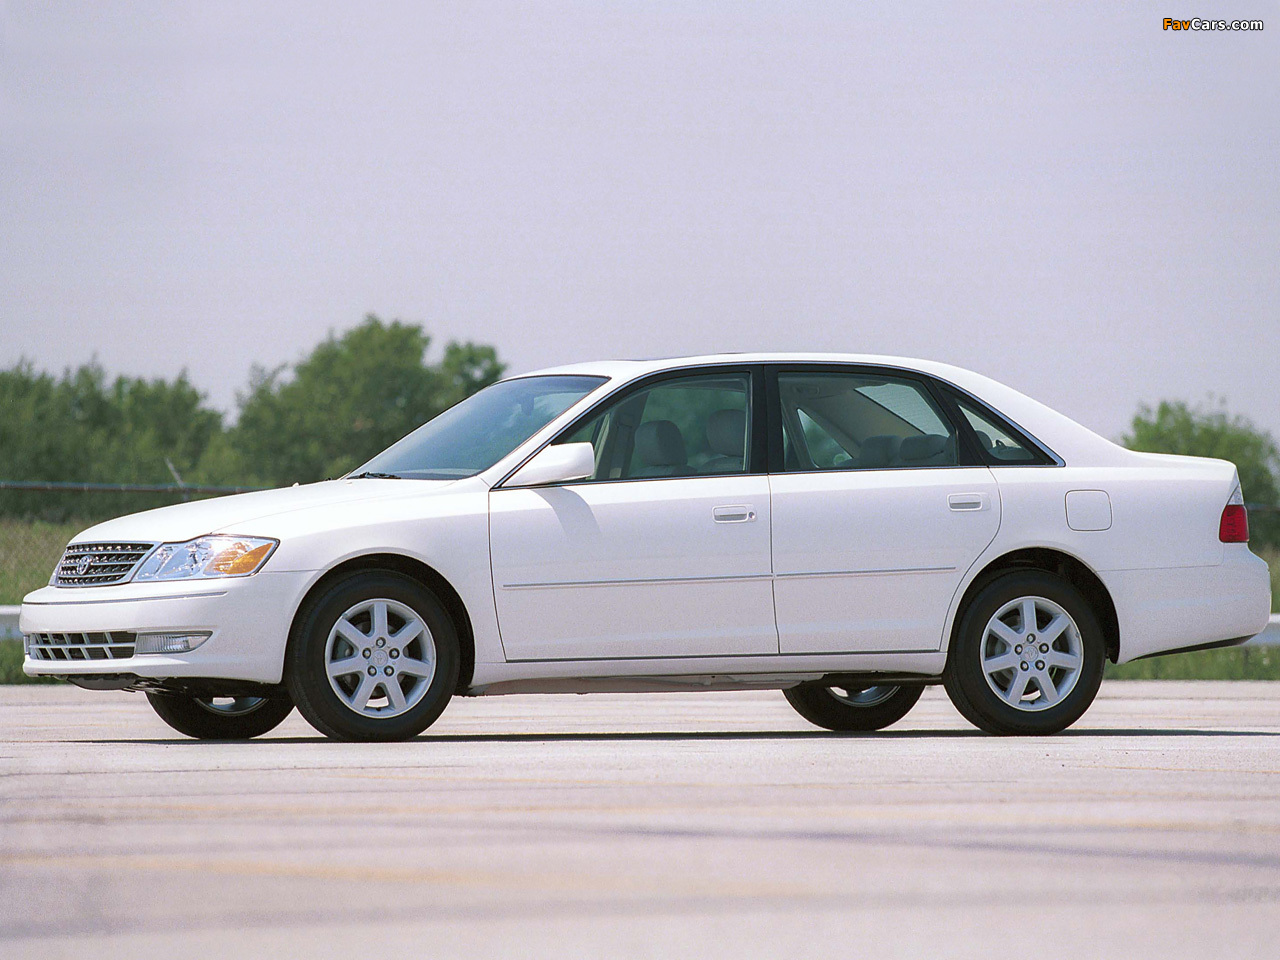 Pictures of Toyota Avalon (MCX20) 2003–05 (1280x960)